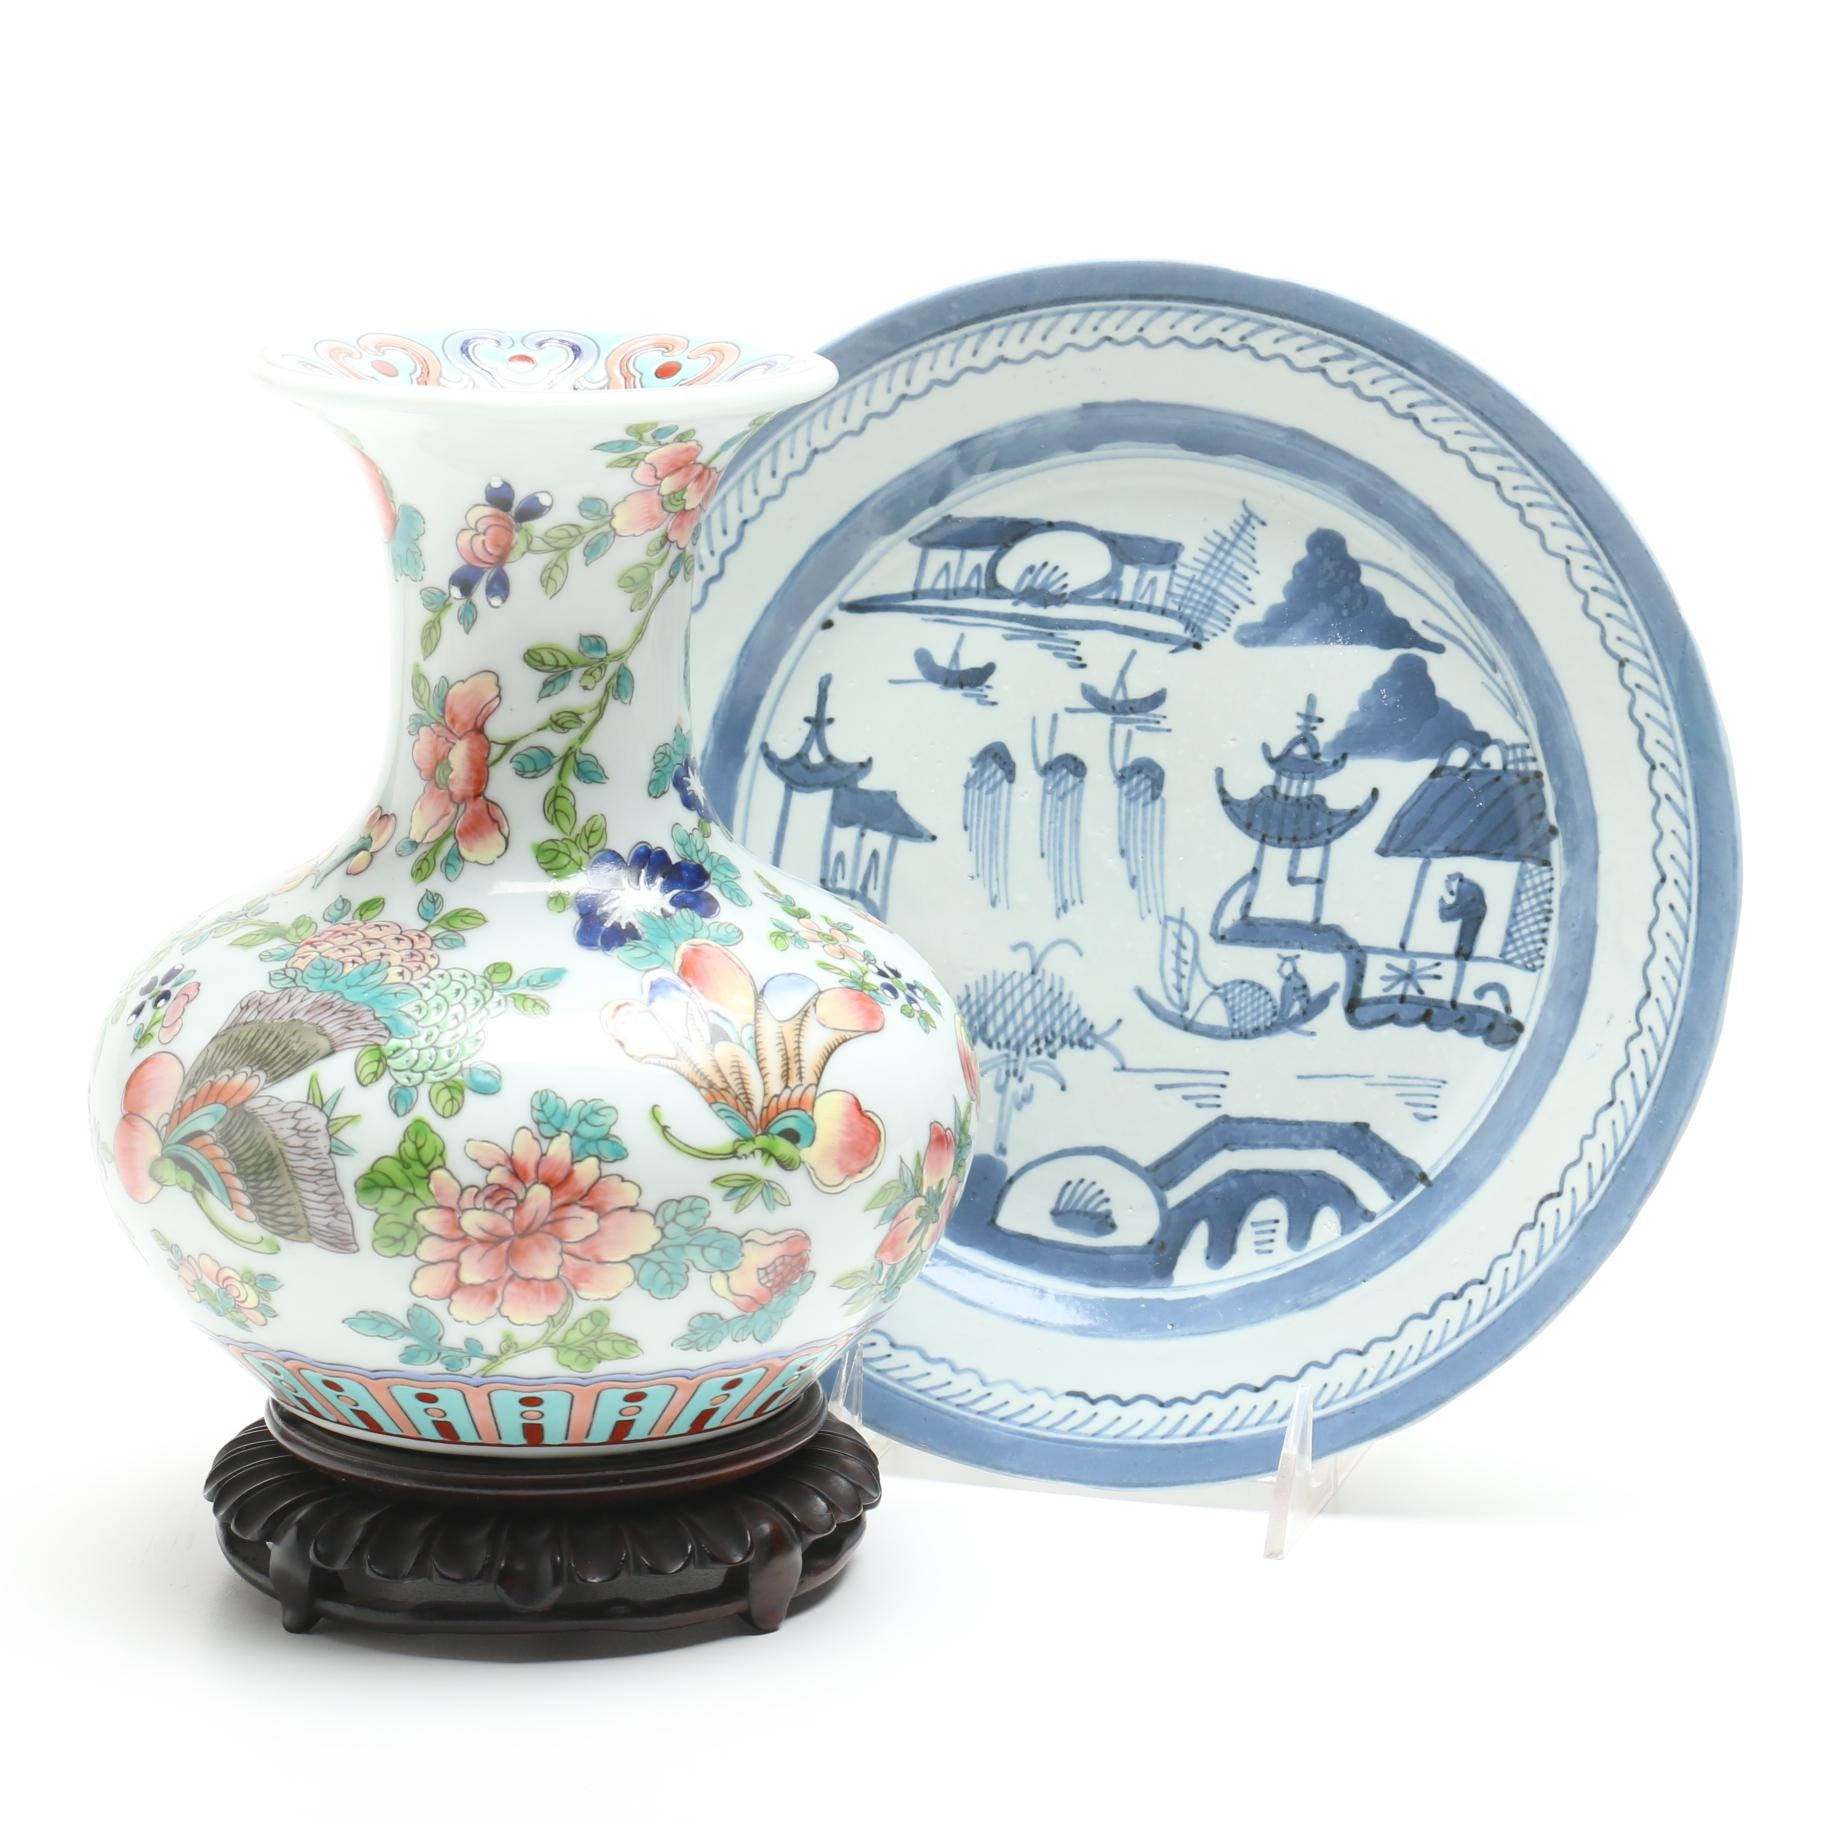 Chinese Ceramic Floral Themed Vase with Wooden Stand and Canton Style Plate